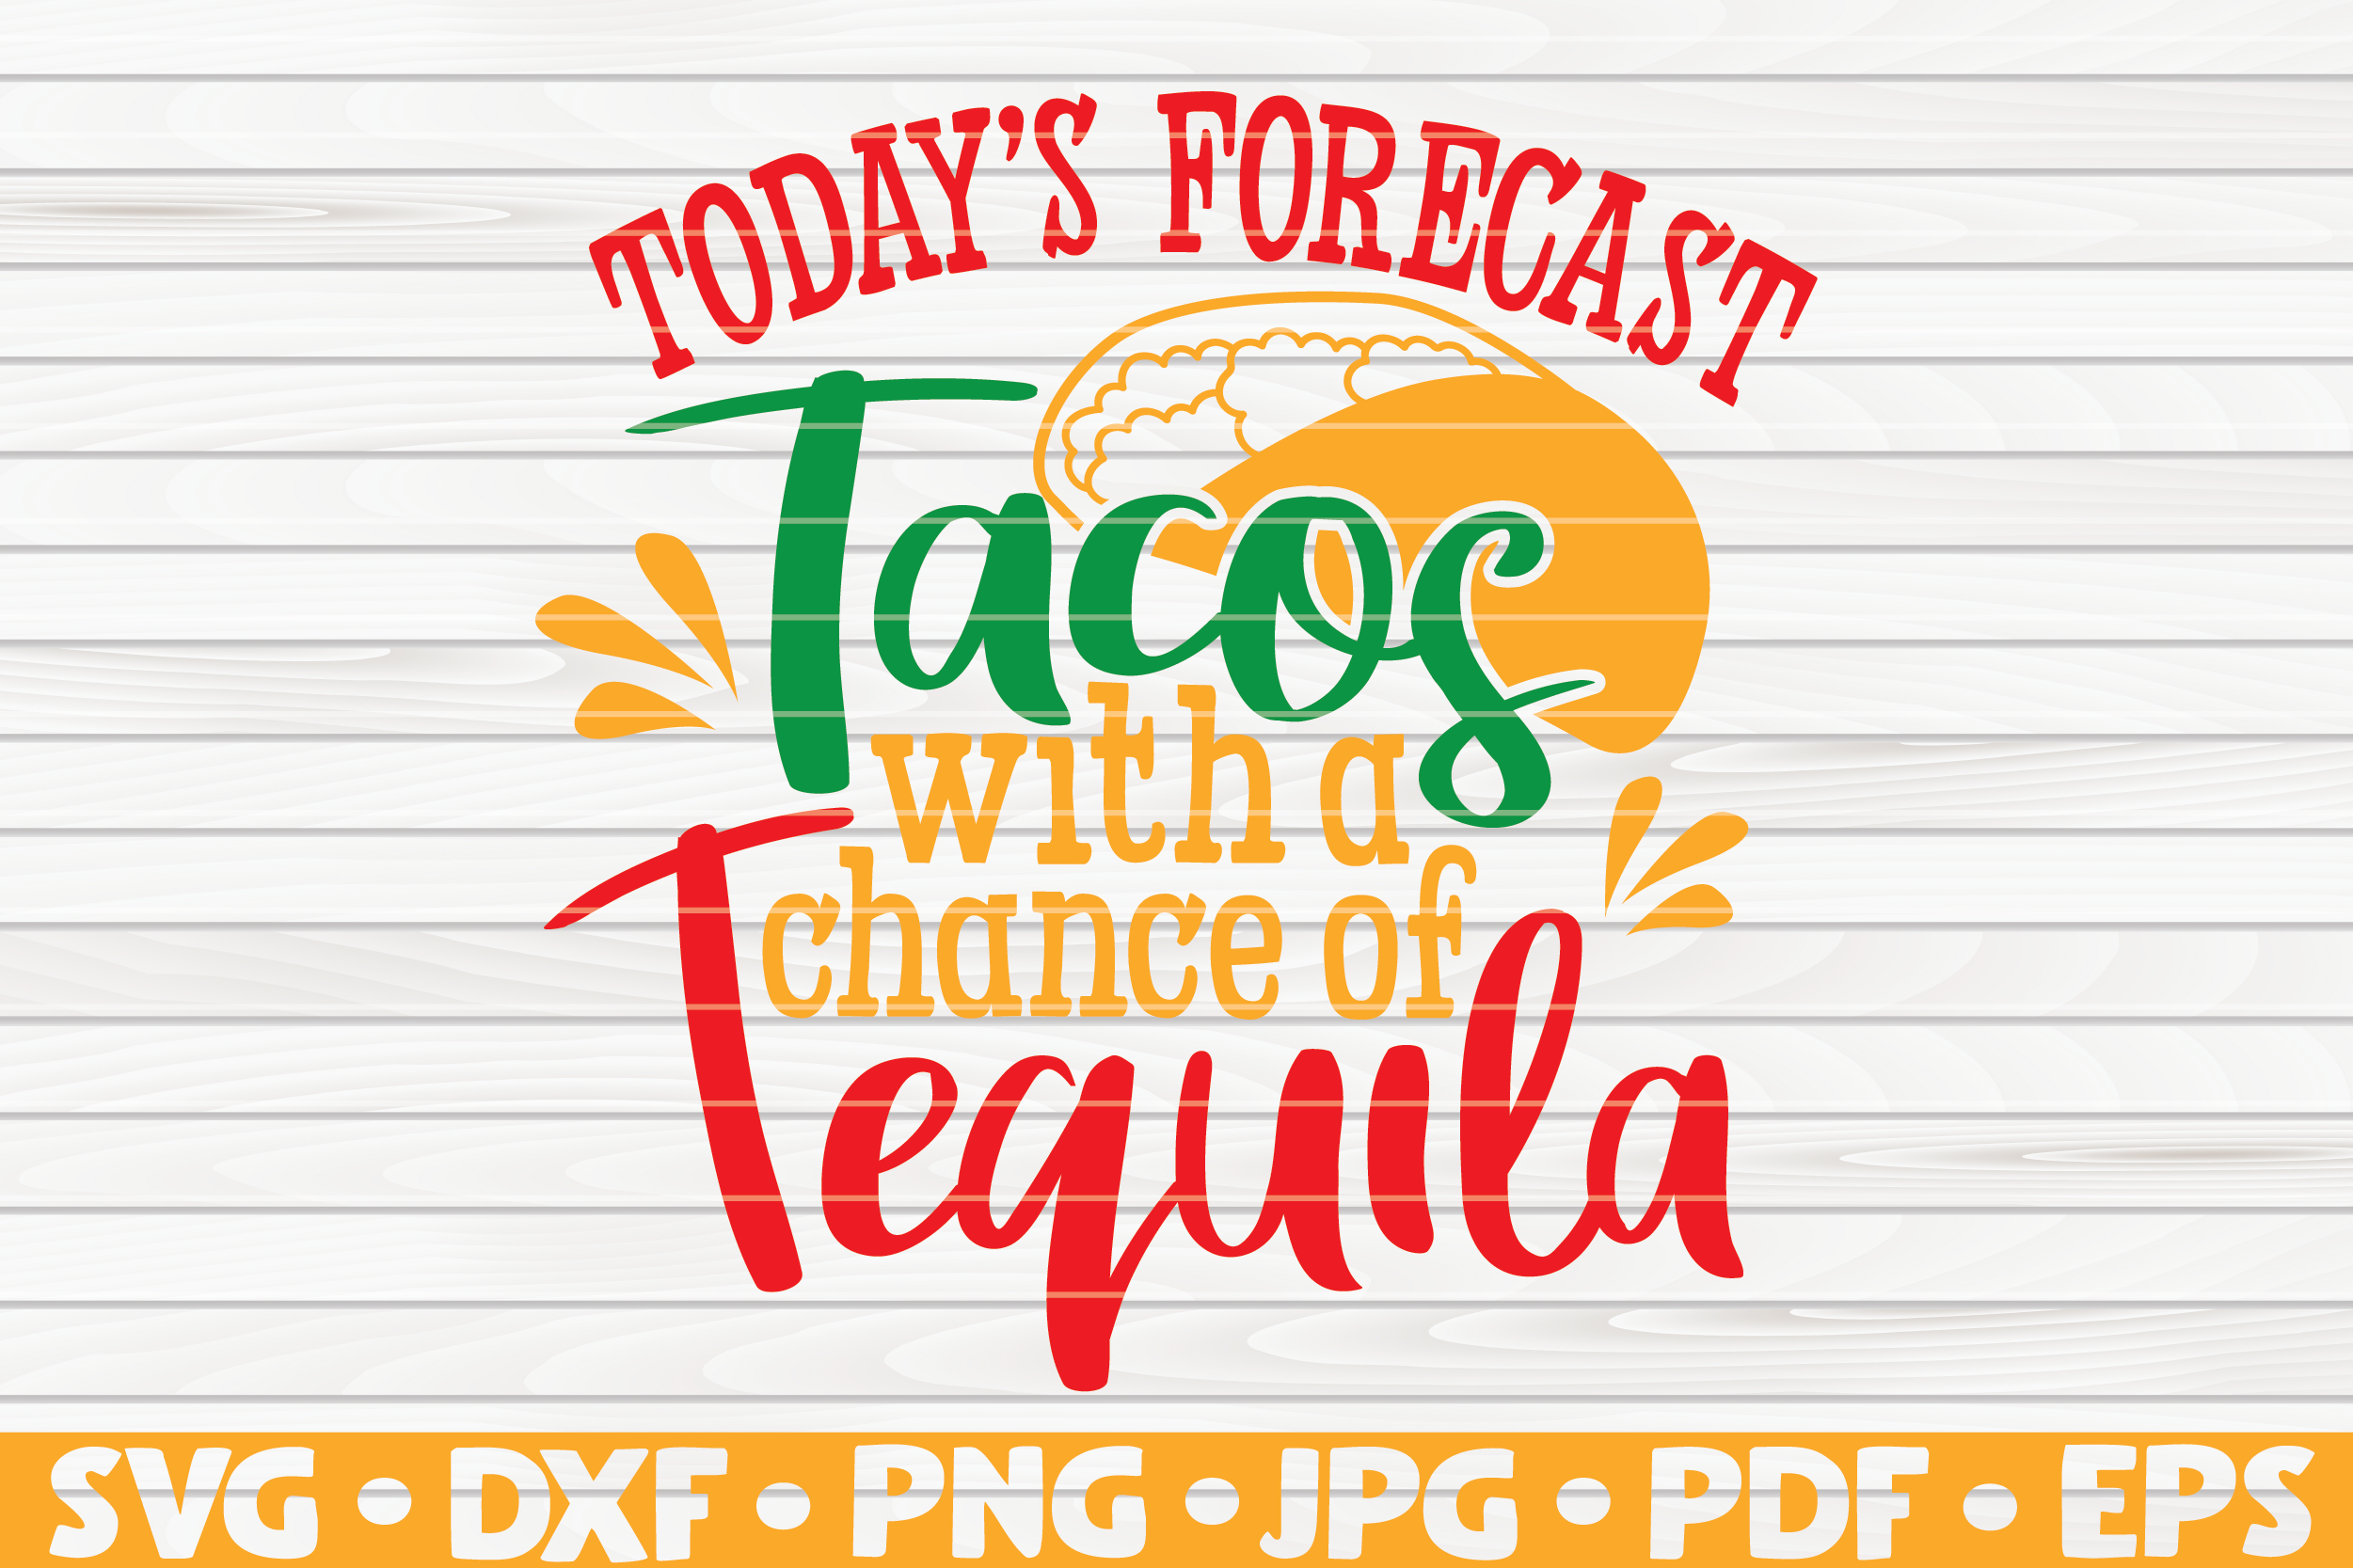 Download Free Tacos With A Chance Of Tequila Graphic By Mihaibadea95 for Cricut Explore, Silhouette and other cutting machines.